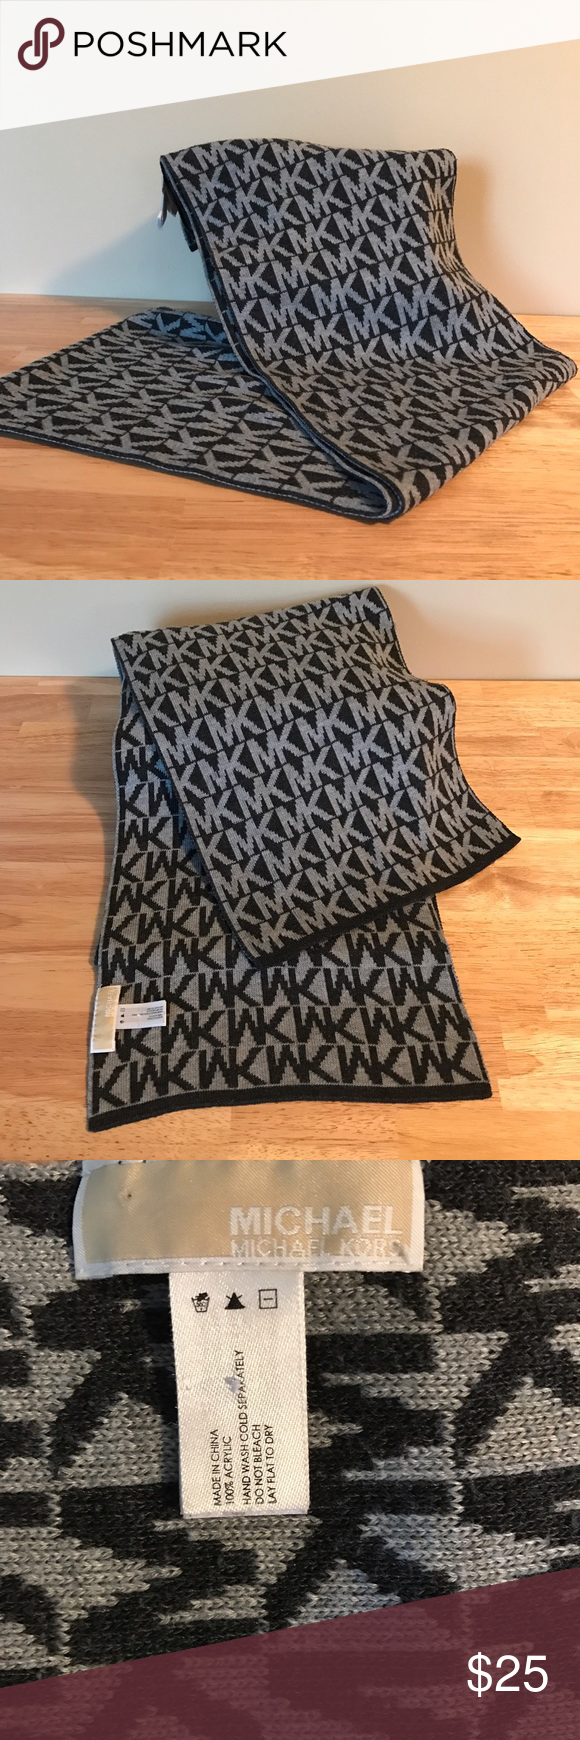 Michael Kors Scarf Michael Kors Scarf Charcoal Gray & Light Gray MK logo. Pre-loved but in great condition! Reasonable offers accepted with the offer button- NO TRADES. Michael Kors Accessories Scarves & Wraps